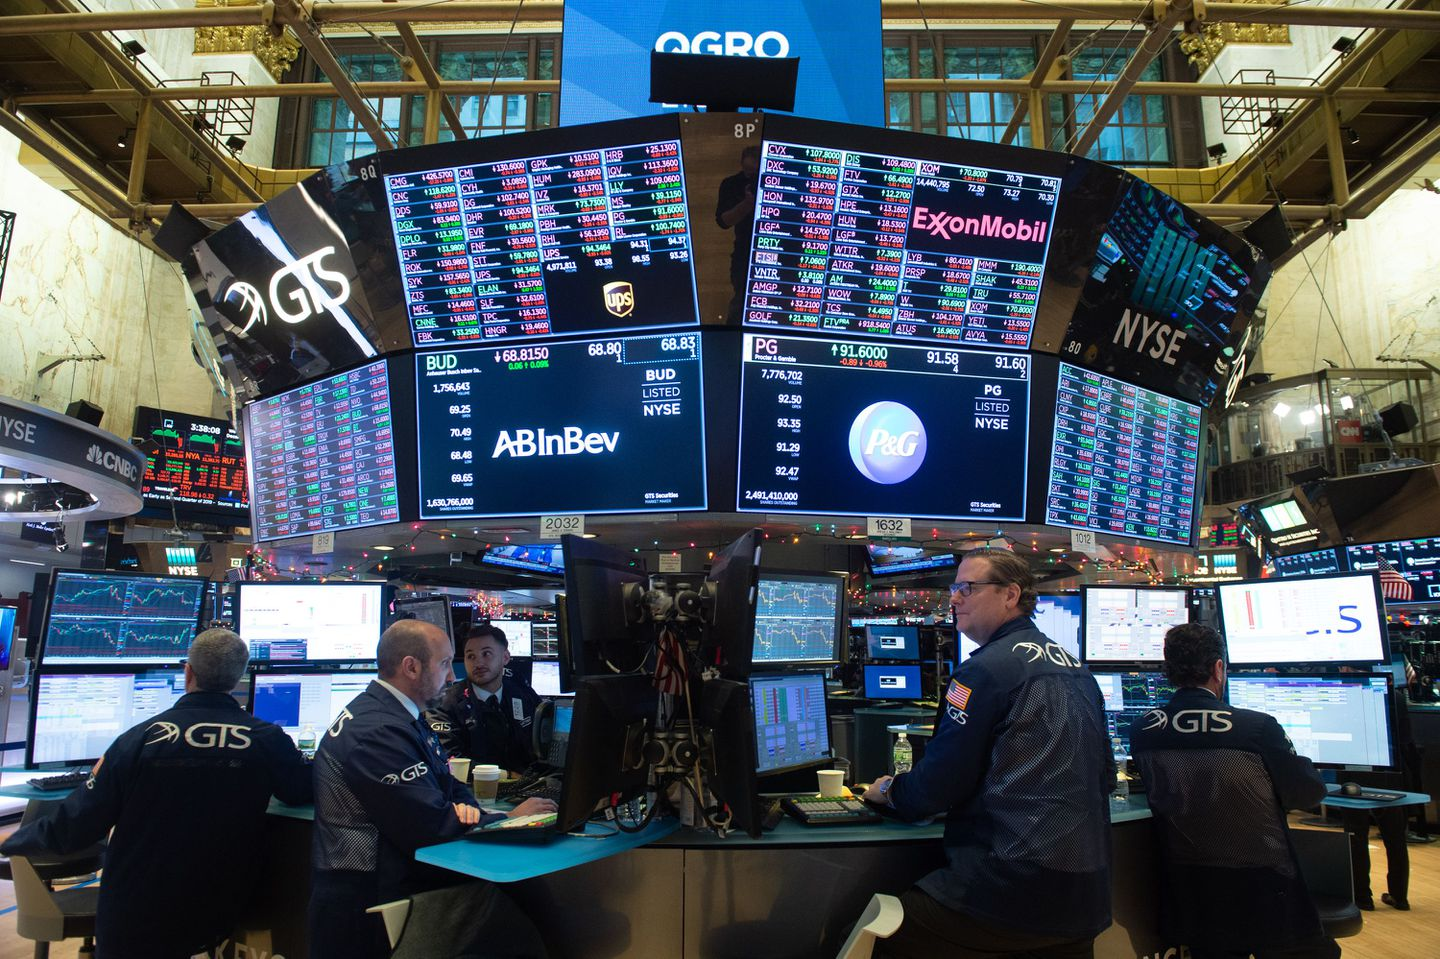 Brokers say new US stock market will take on NYSE, Nasdaq - The ...